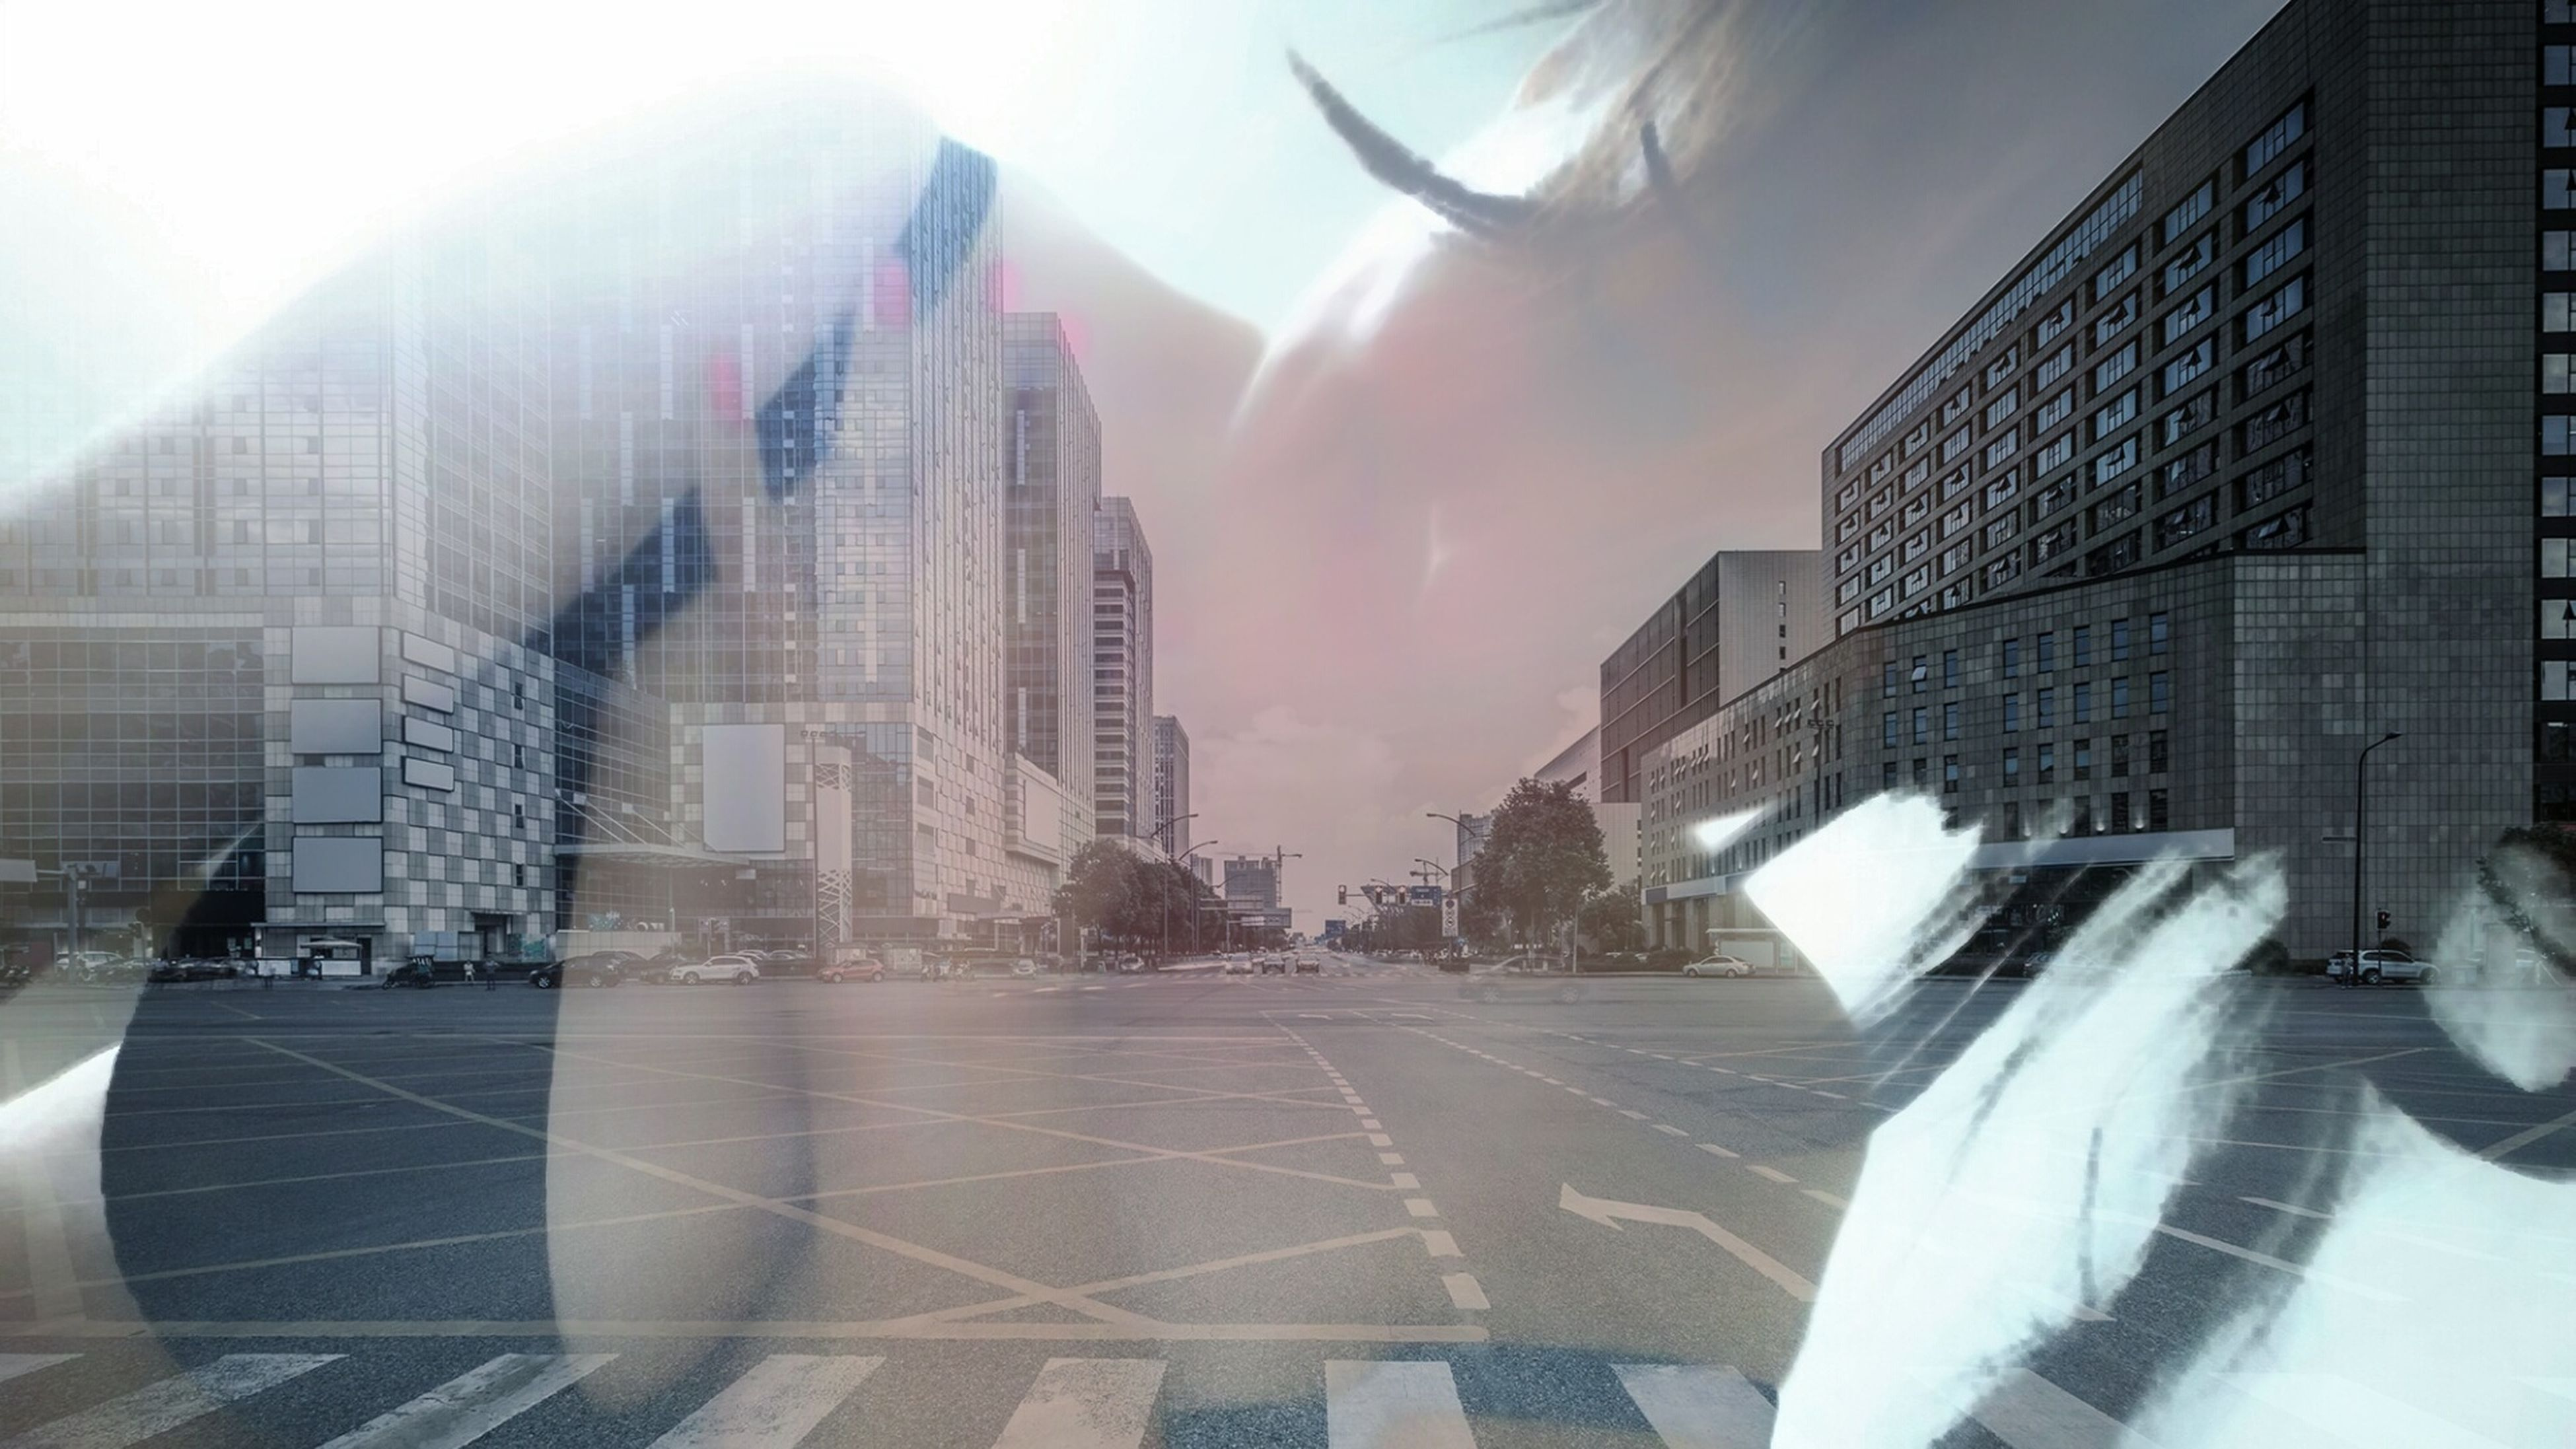 architecture, built structure, road, city, building exterior, transportation, lens flare, skyscraper, the way forward, sunbeam, city life, outdoors, day, long, tall - high, sky, urban scene, surface level, facade, office building, modern, tall, development, building story